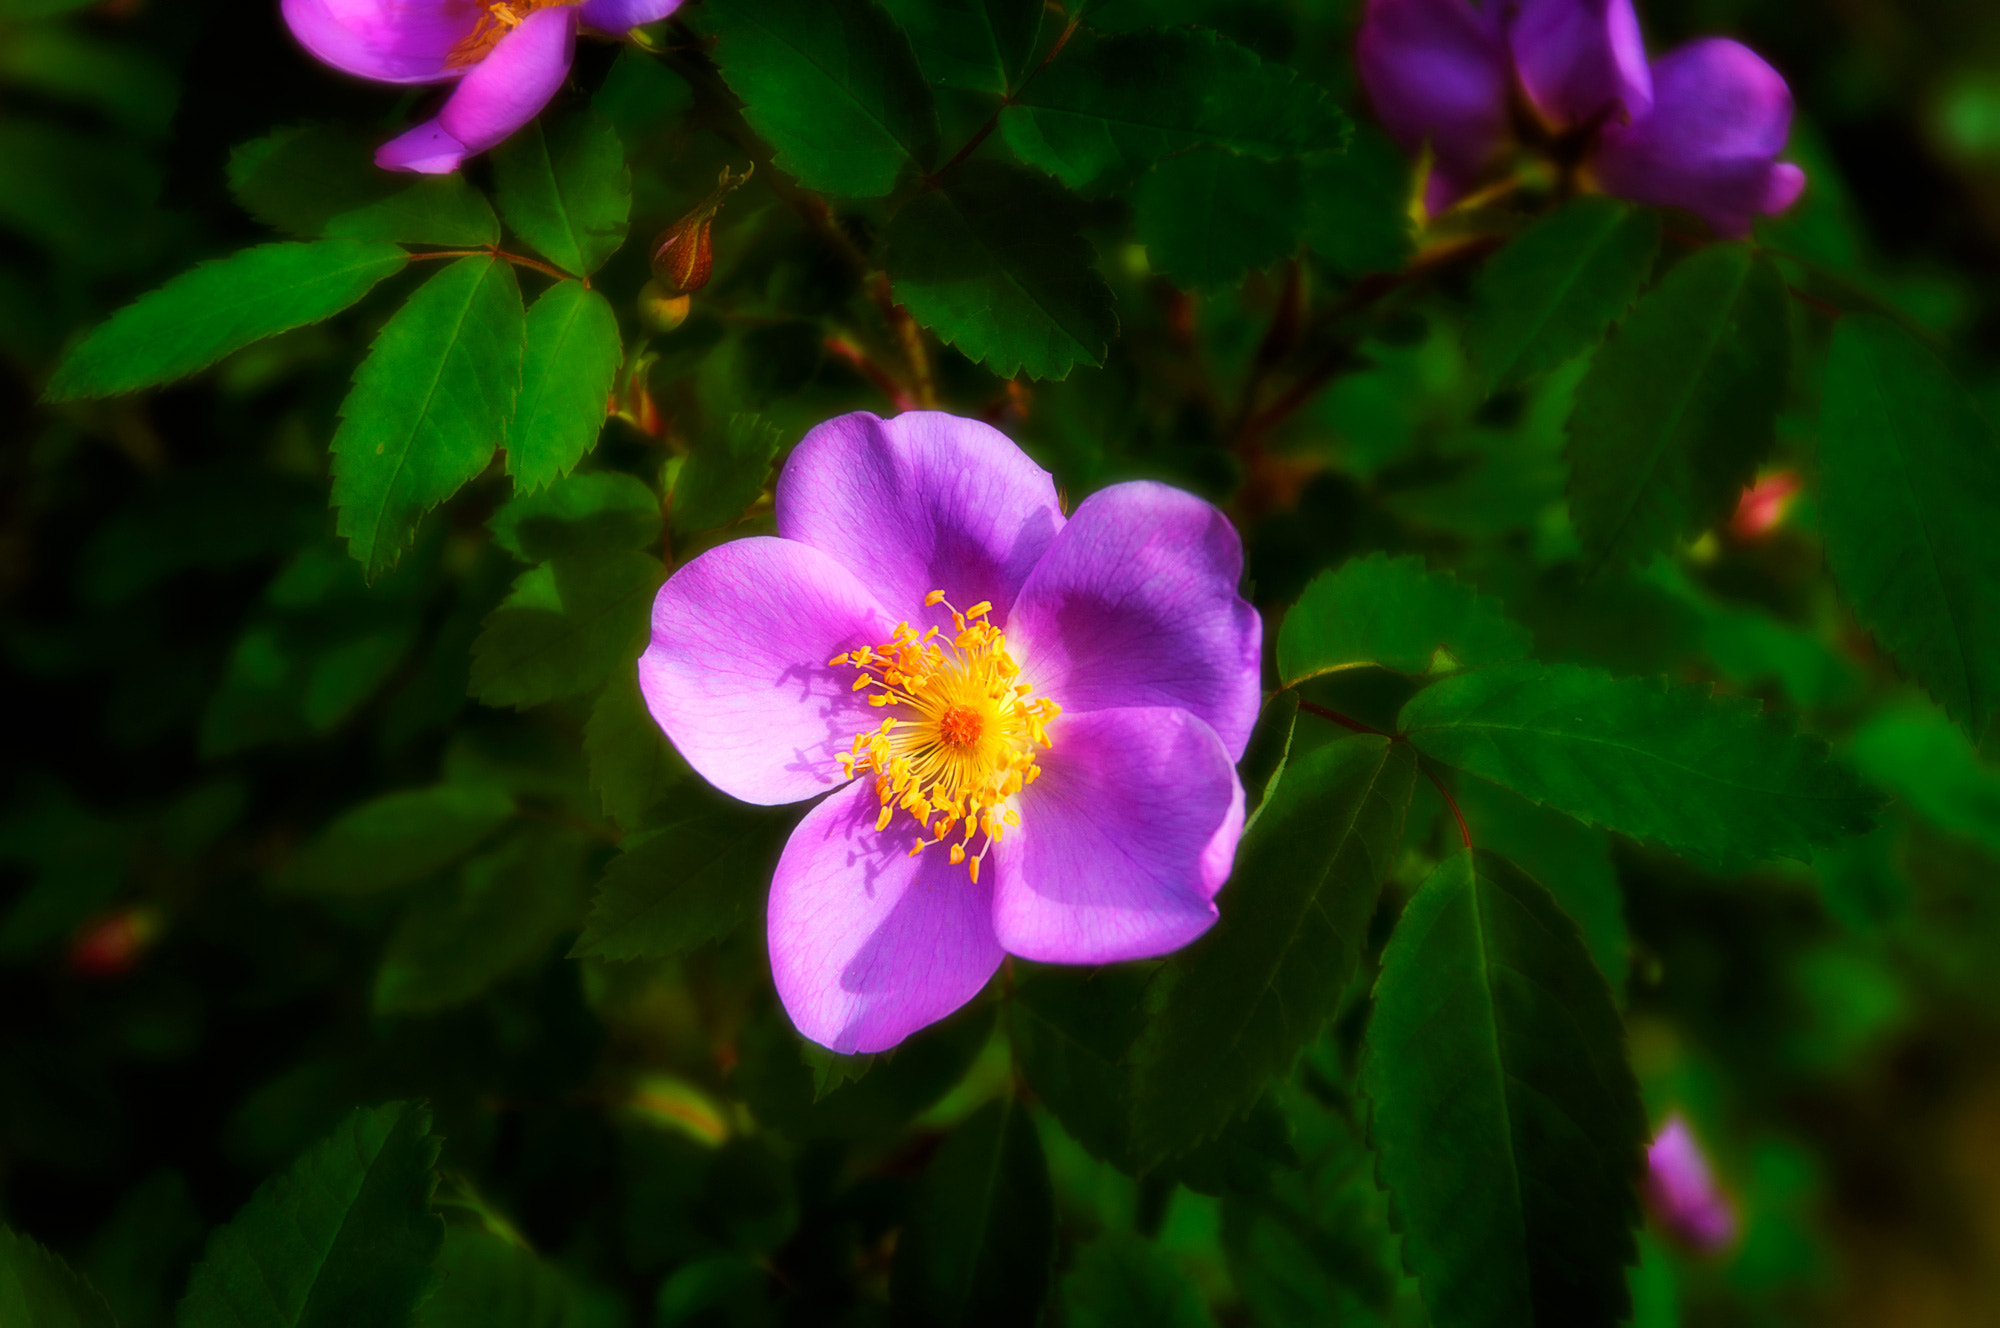 Photograph Wild Rose by Carla Stringari Pudler on 500px